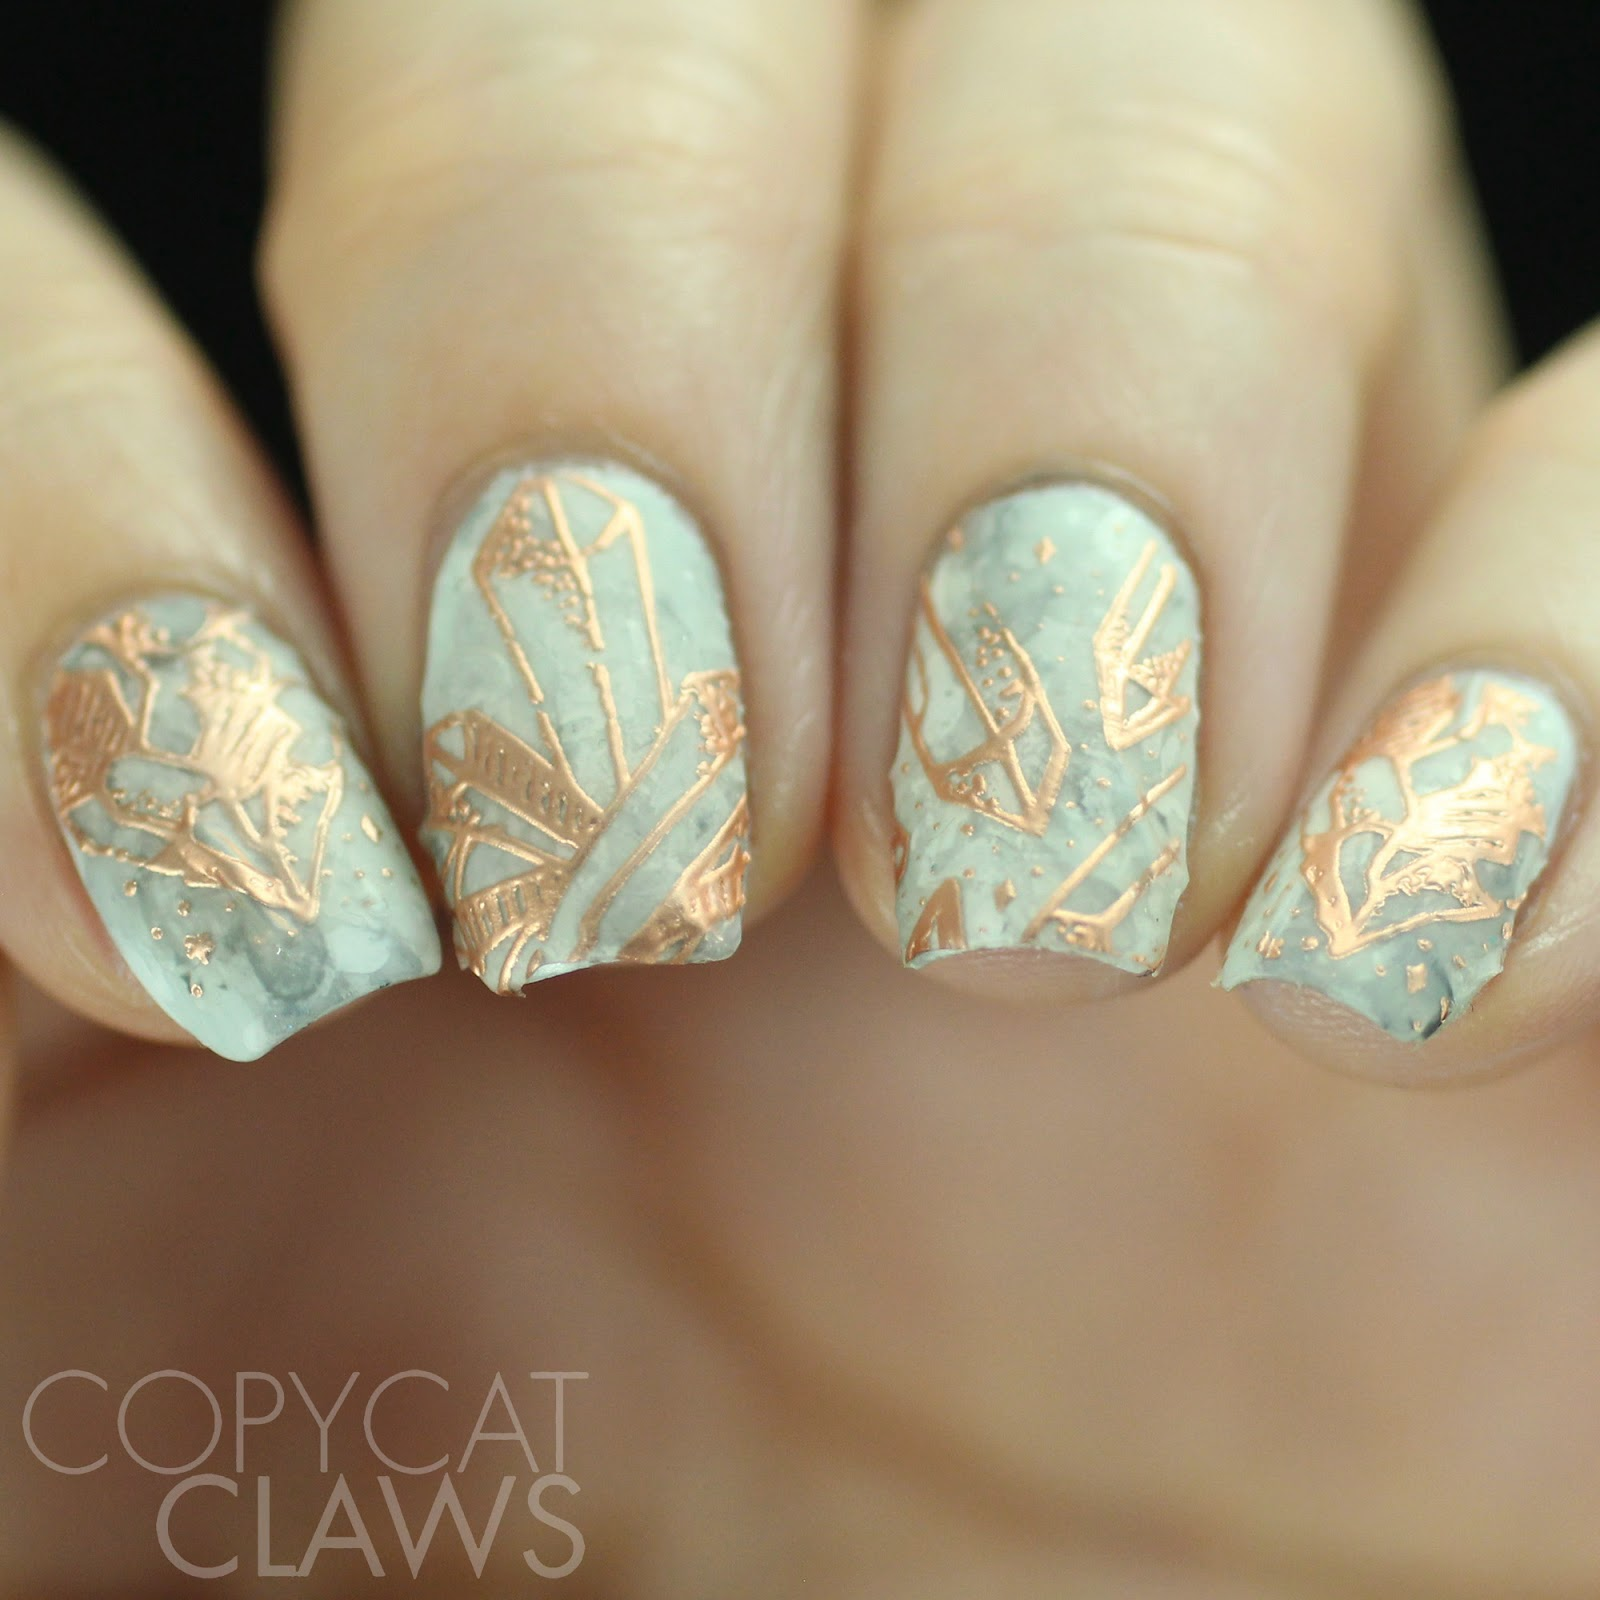 Copycat Claws: Bundle Monster Rose Gold Crystal Nail Wraps Review